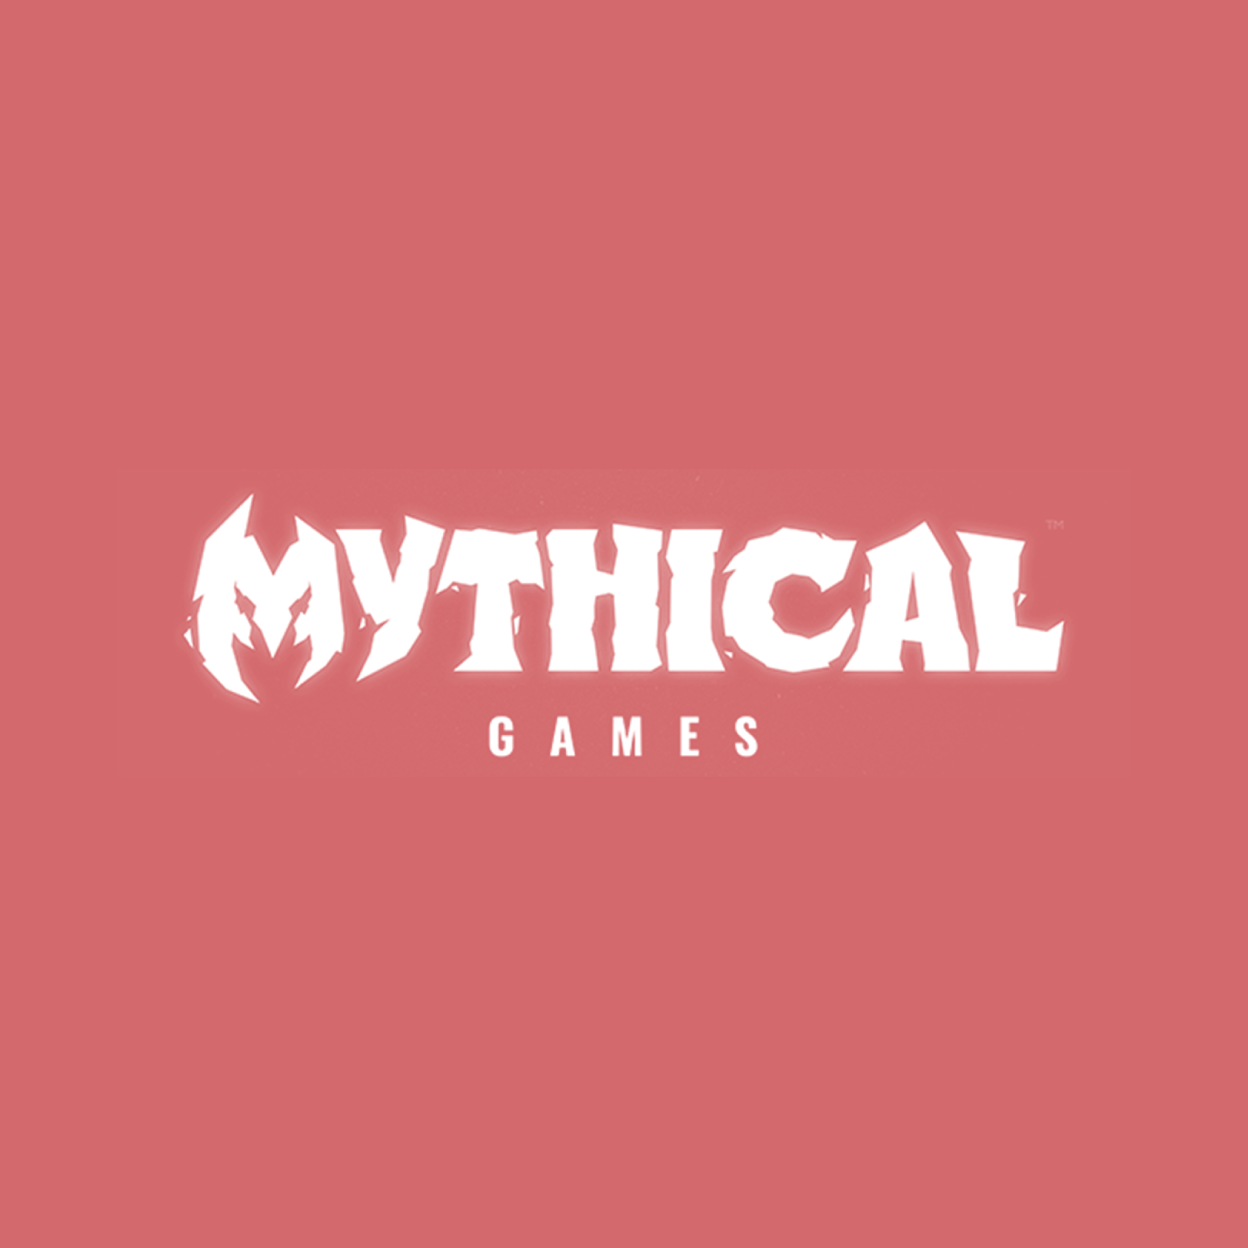 With three former Activision Studio Heads as part of its C-Suite, Mythical is the protocol agnostic platform that will bring true player ownership to AAA rated games.